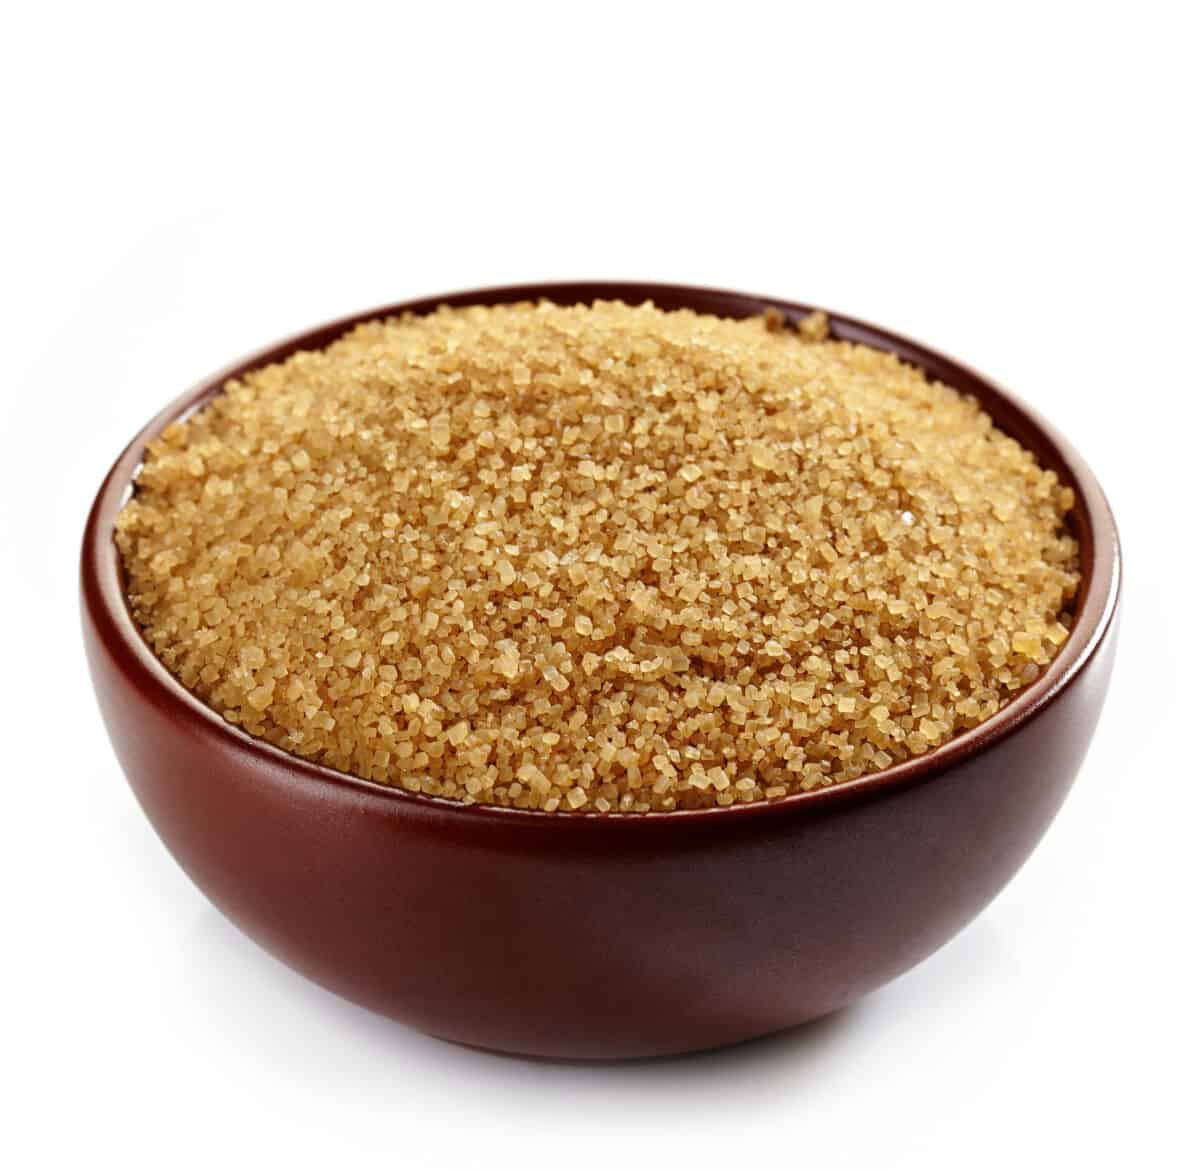 A brown bowl full of granulated brown sugar isolated on white